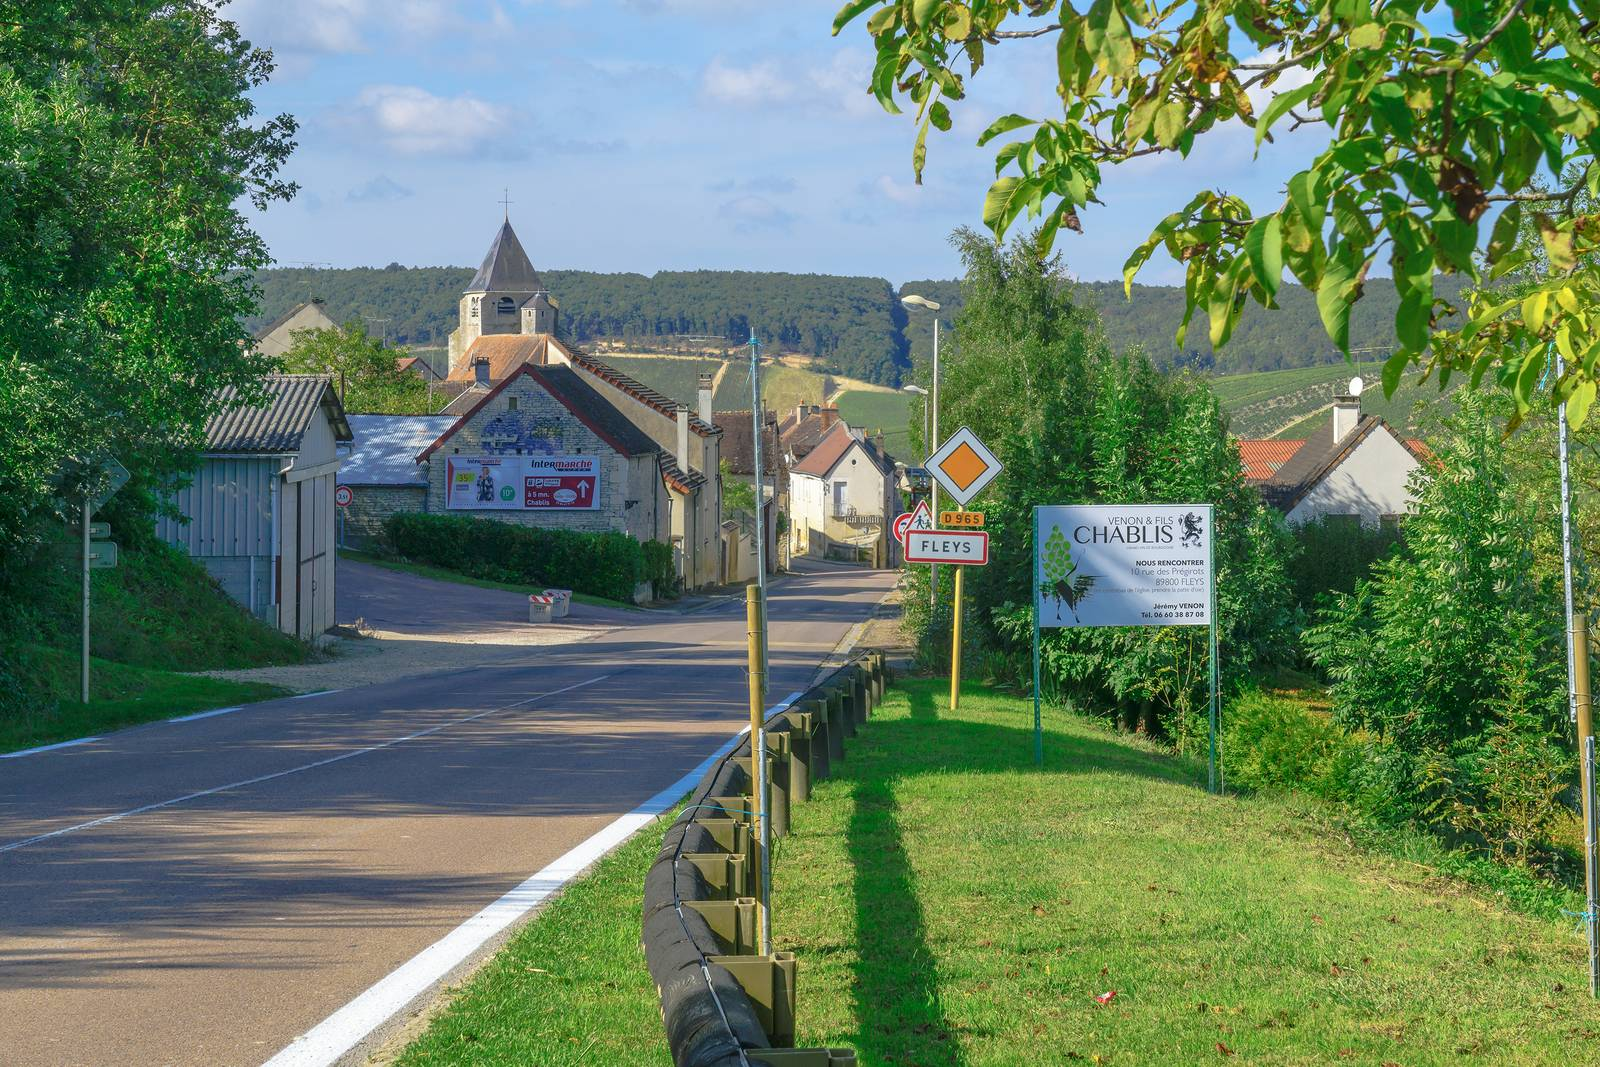 The village Fleys in Chablis, where Charly Nicolle's winery is located.